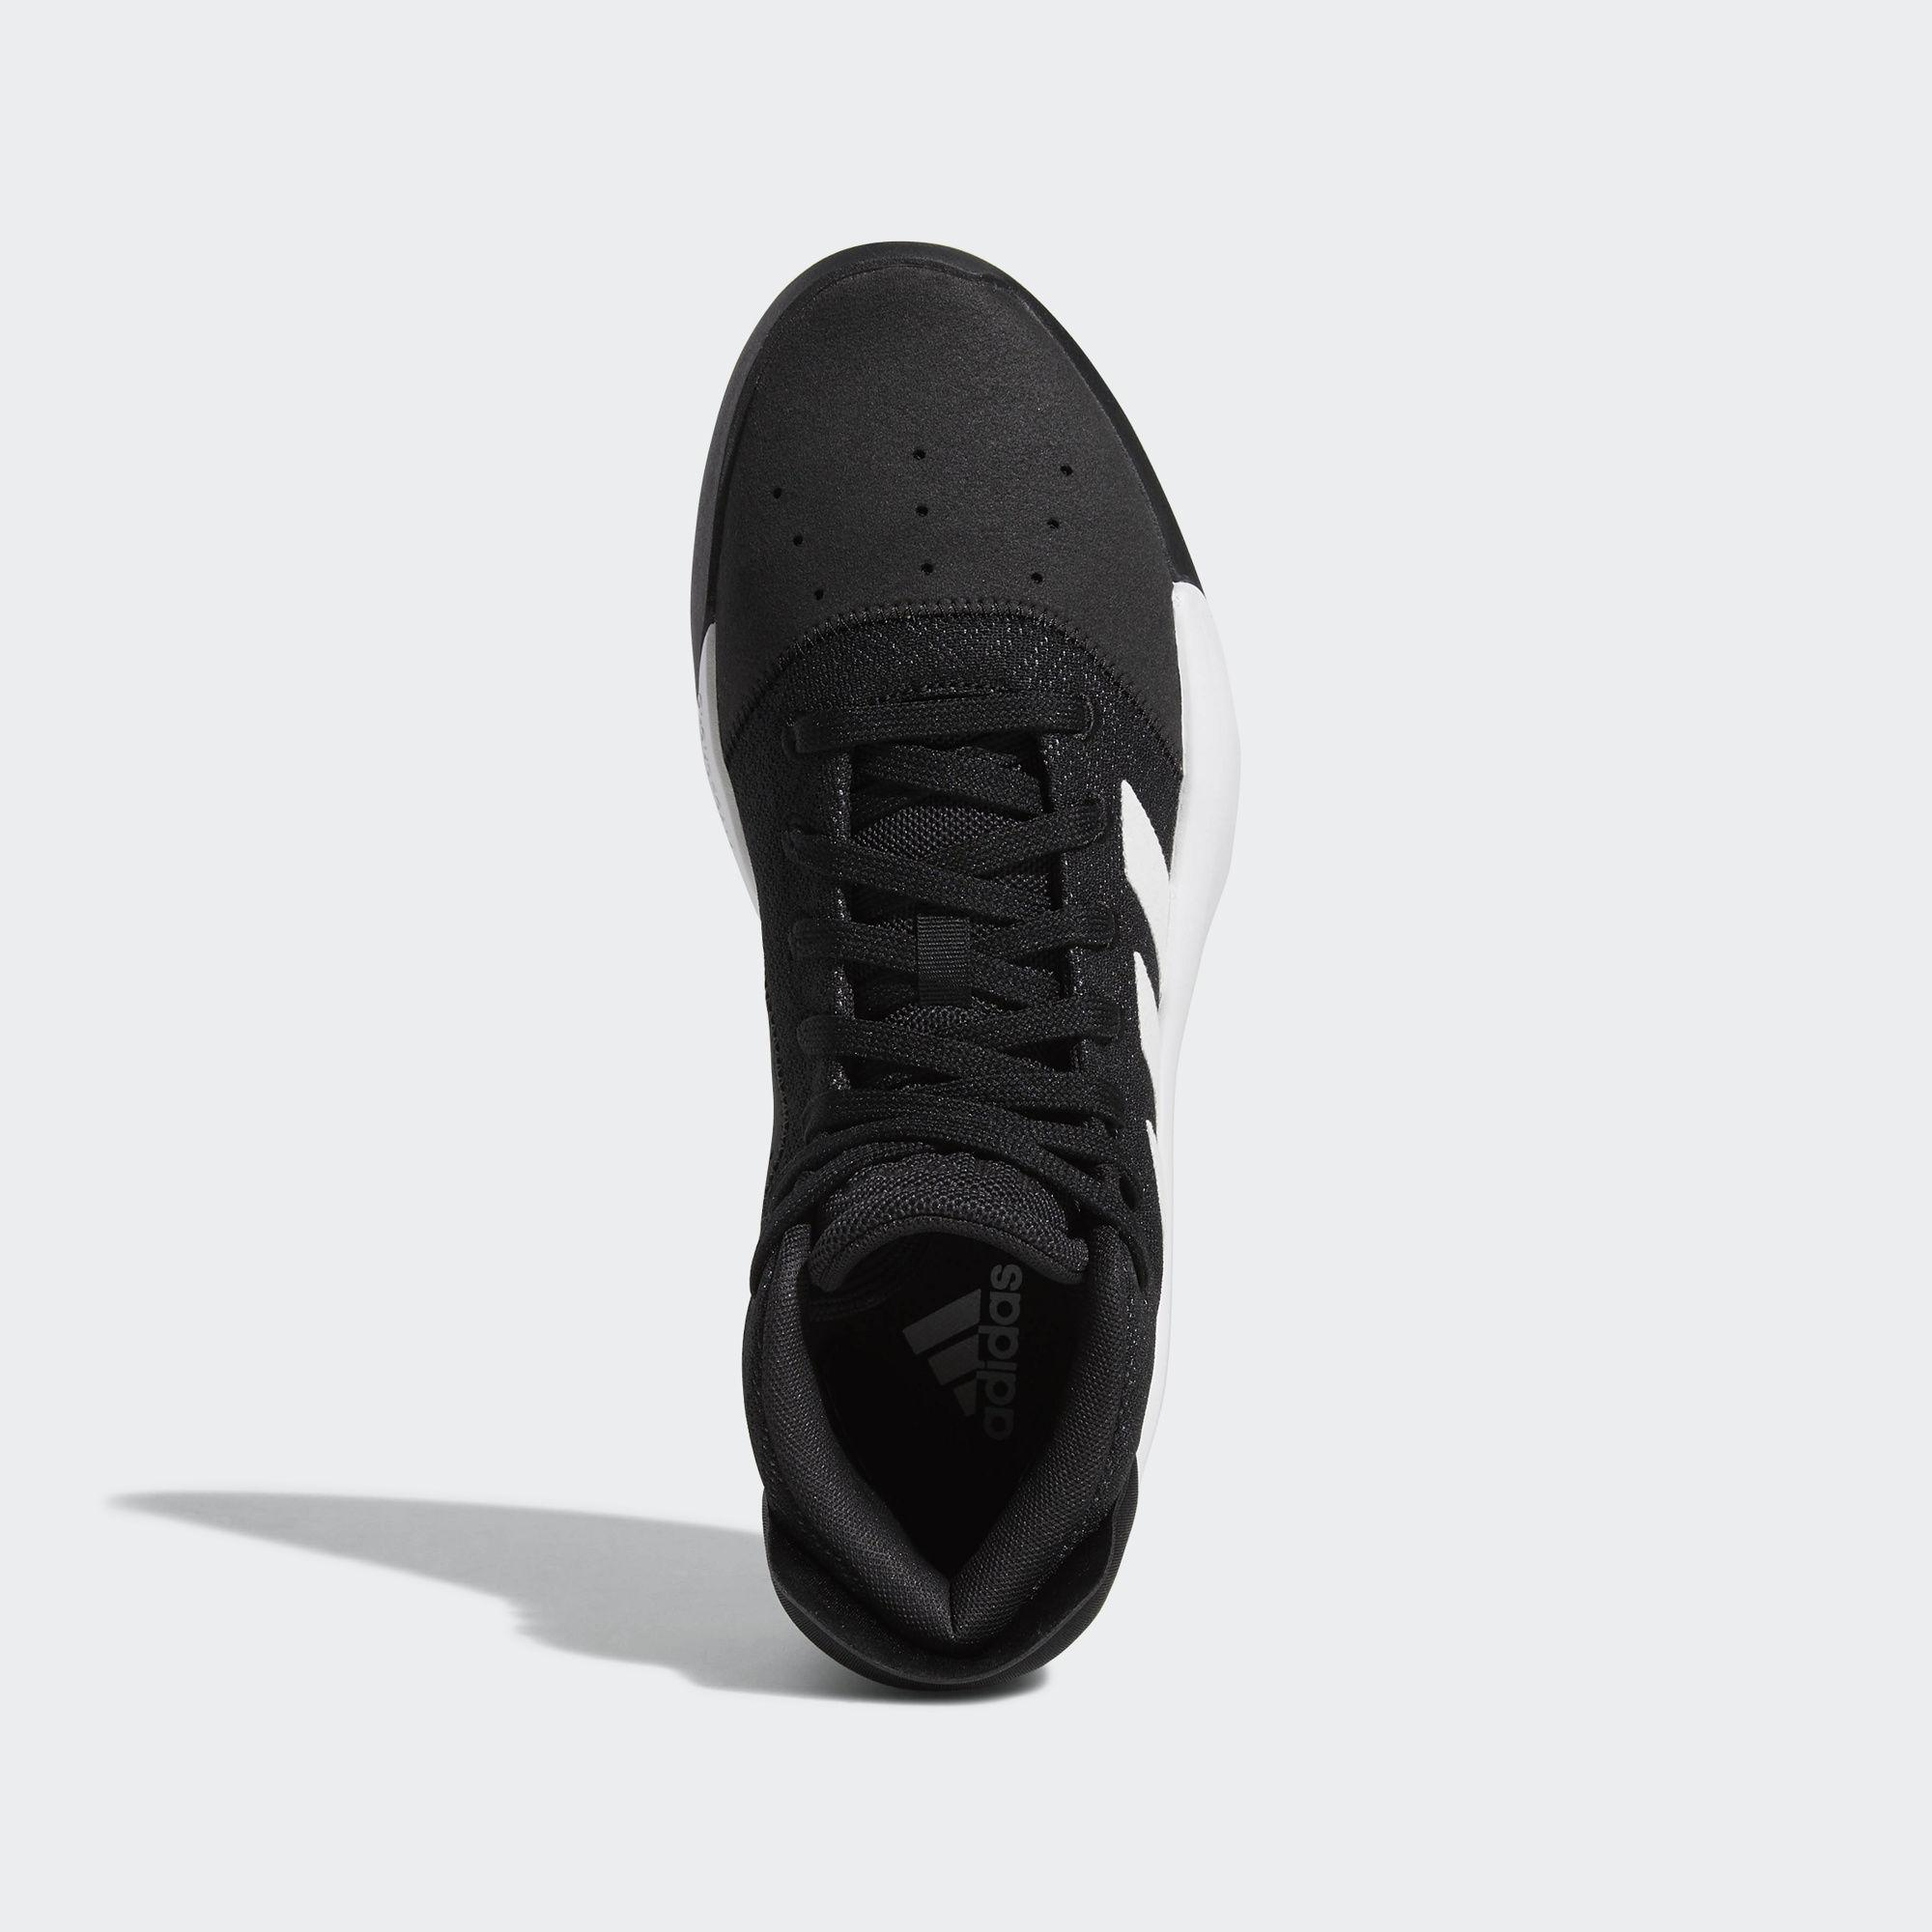 huge discount ed8fd 1b6c0 Adidas - Black Pro Adversary 2019 Shoes for Men - Lyst. View fullscreen